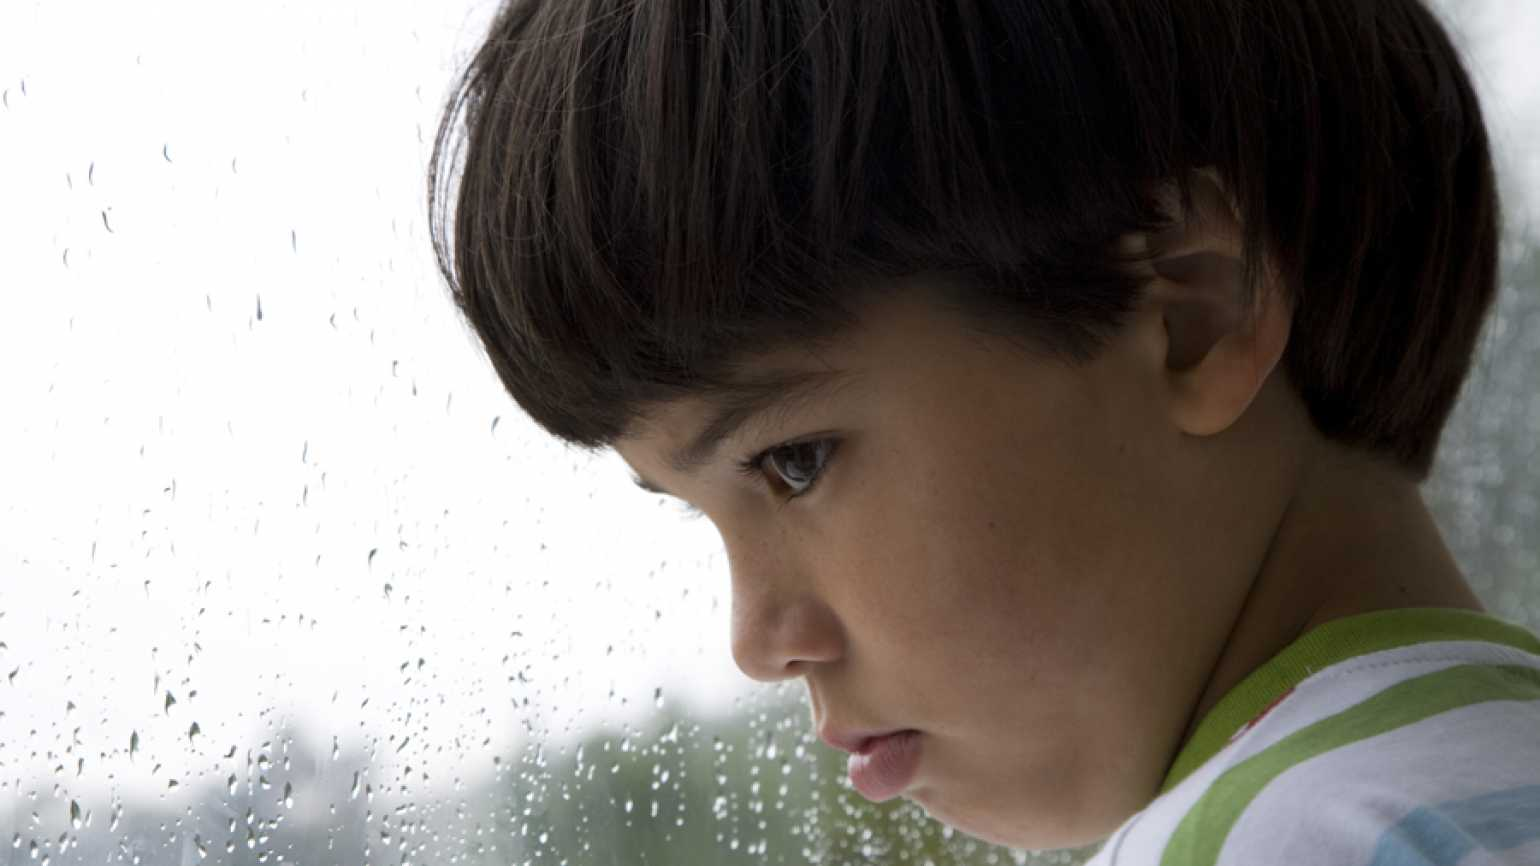 childhood domestic violence: how to heal | Guideposts